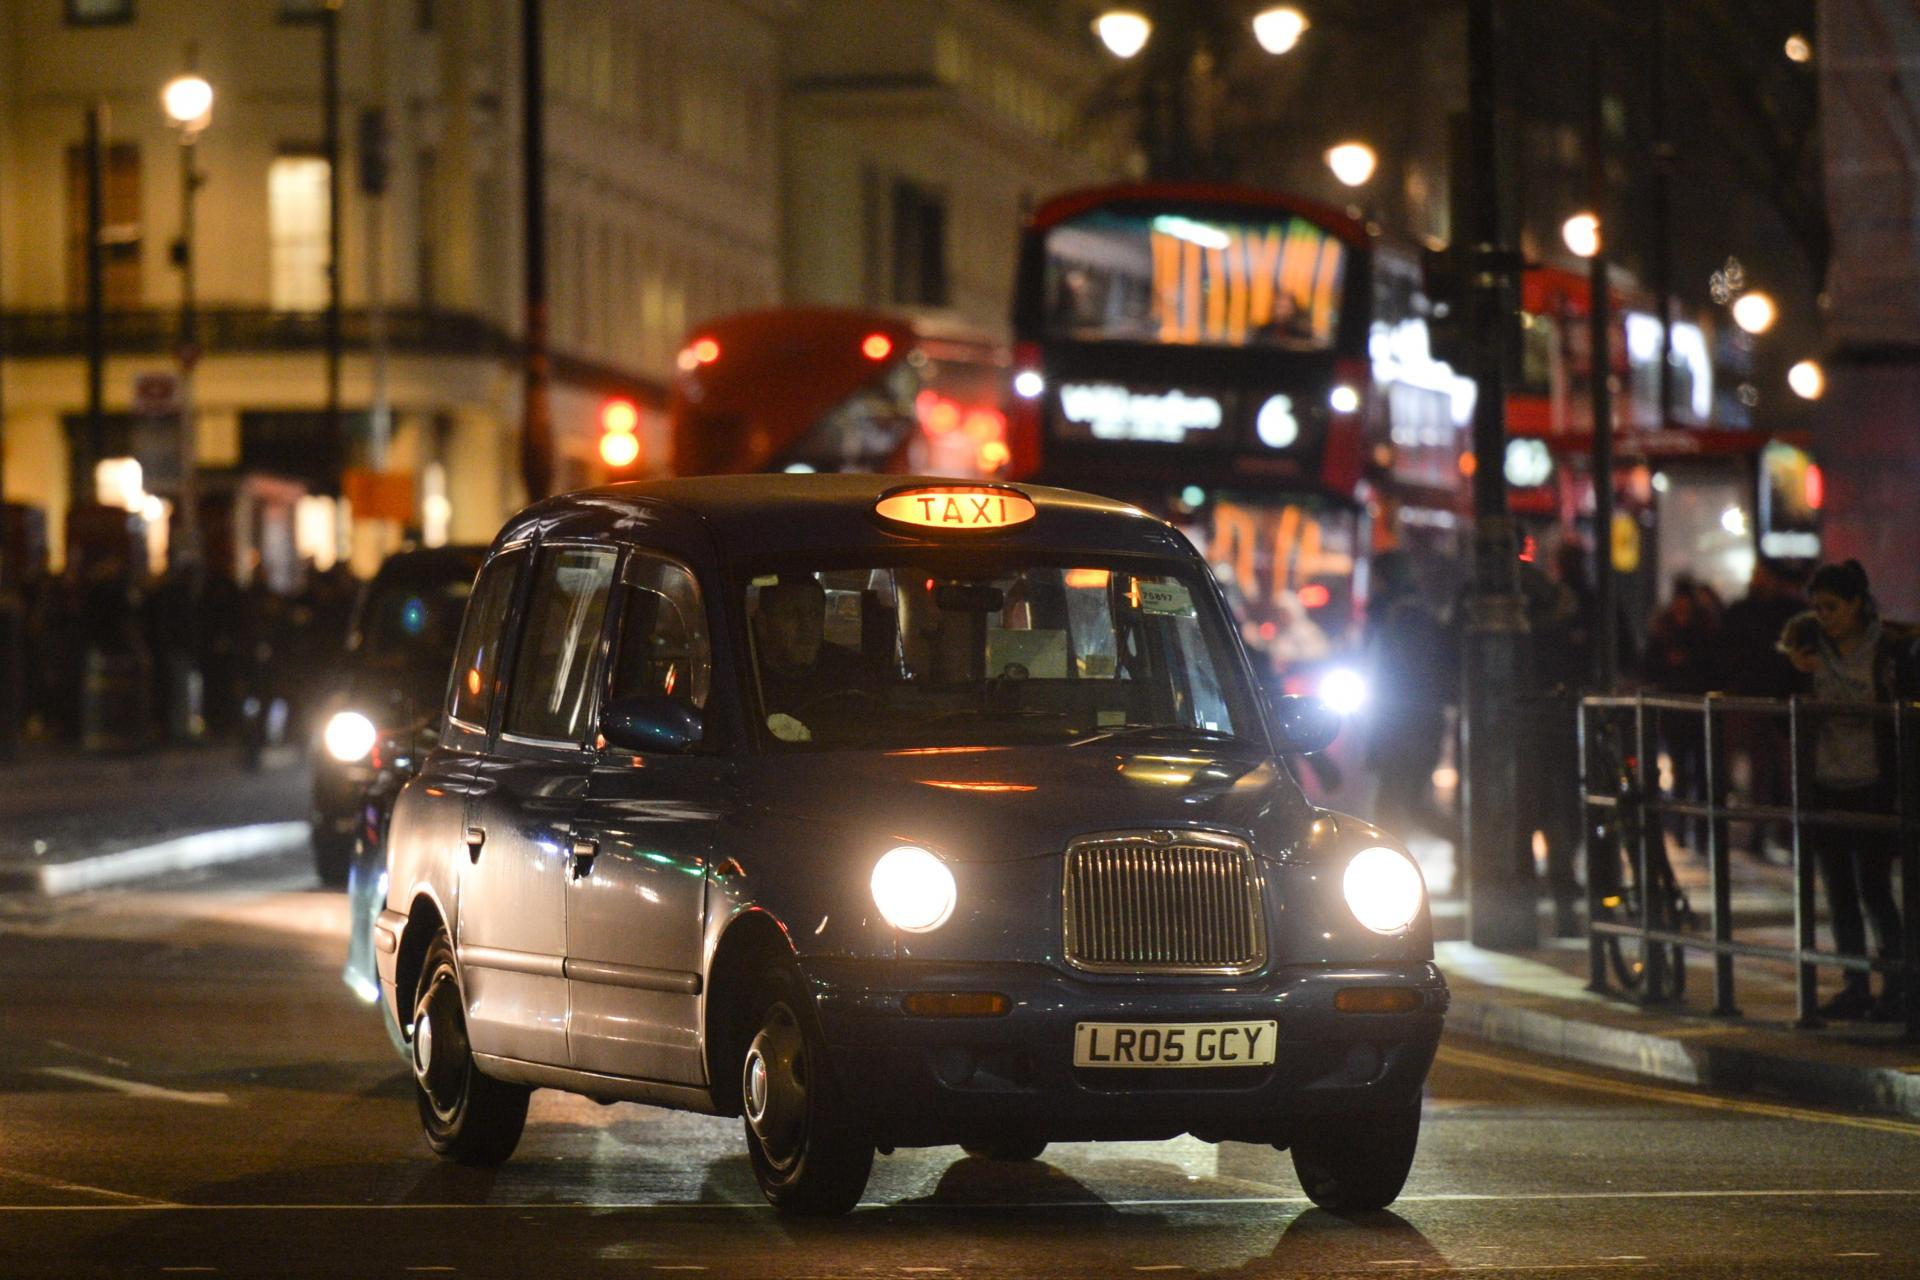 how to get black cab licence in london